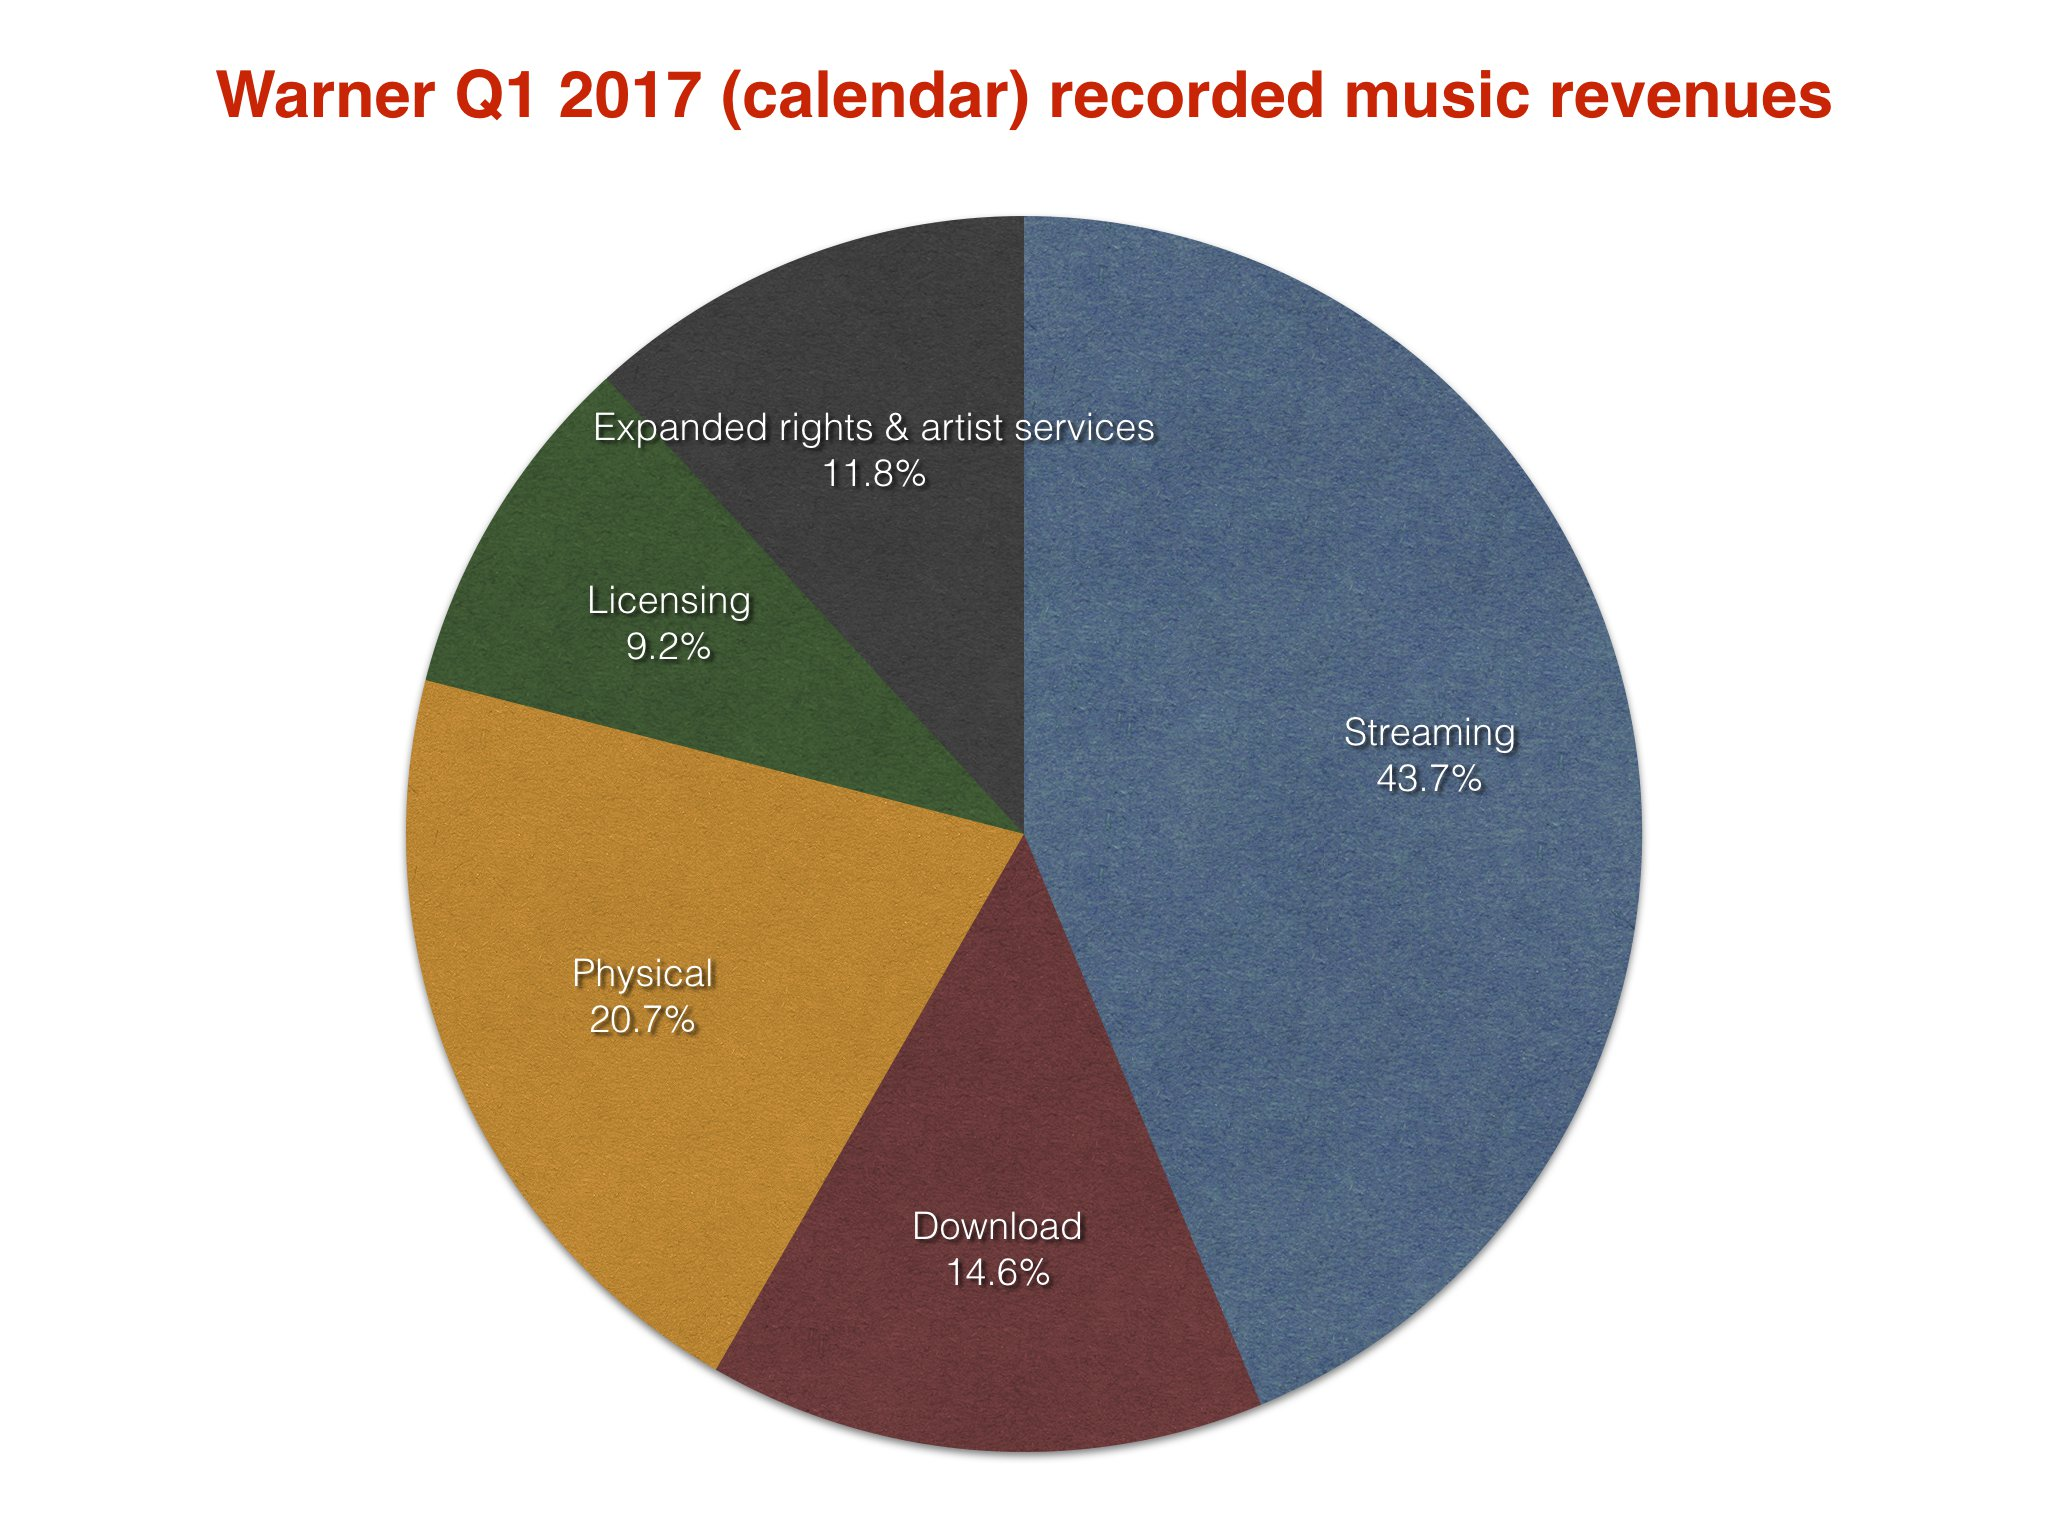 Ed Sheeran and Bruno Mars' music helps boost Warner Music's total revenues